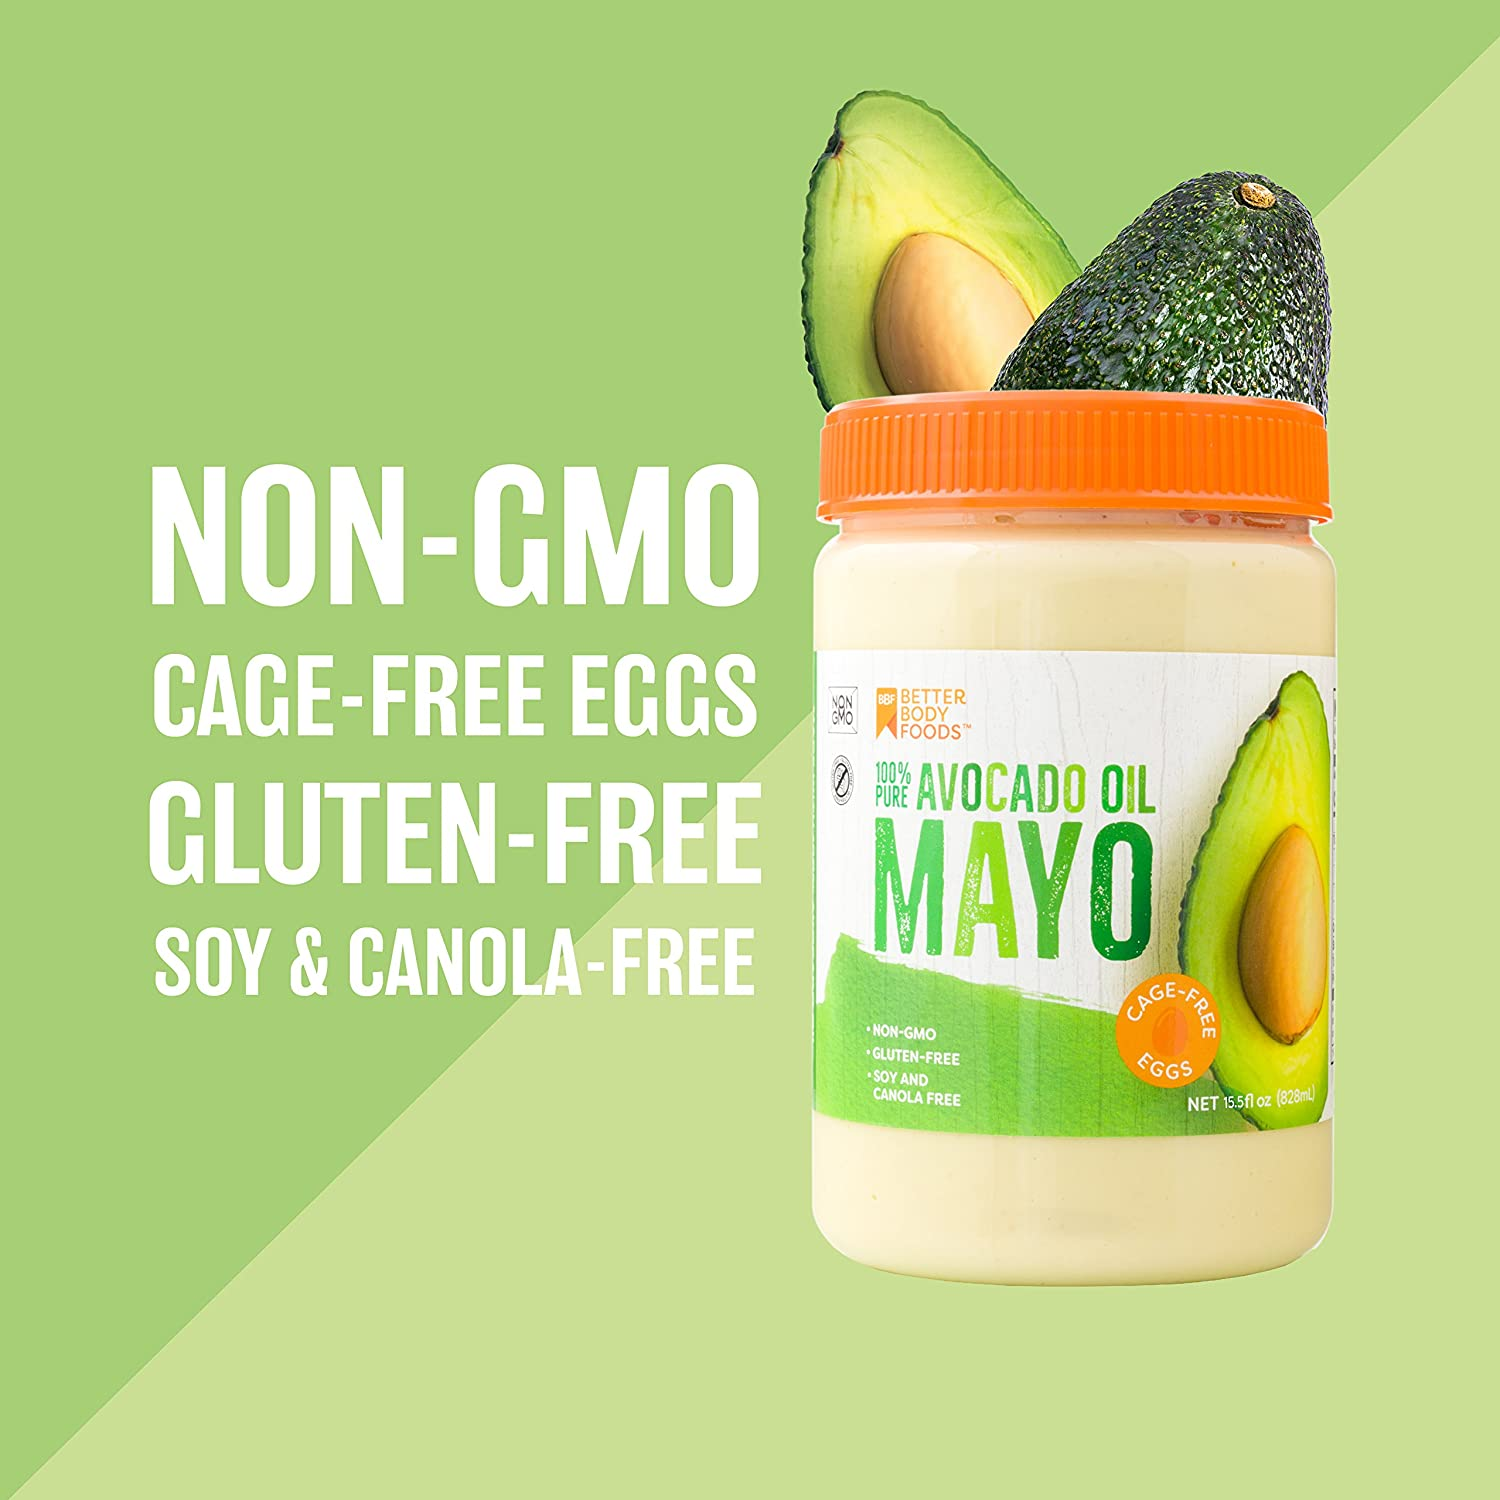 Avocado Oil Mayo is made with 100% Avocado Oil Non-GMO